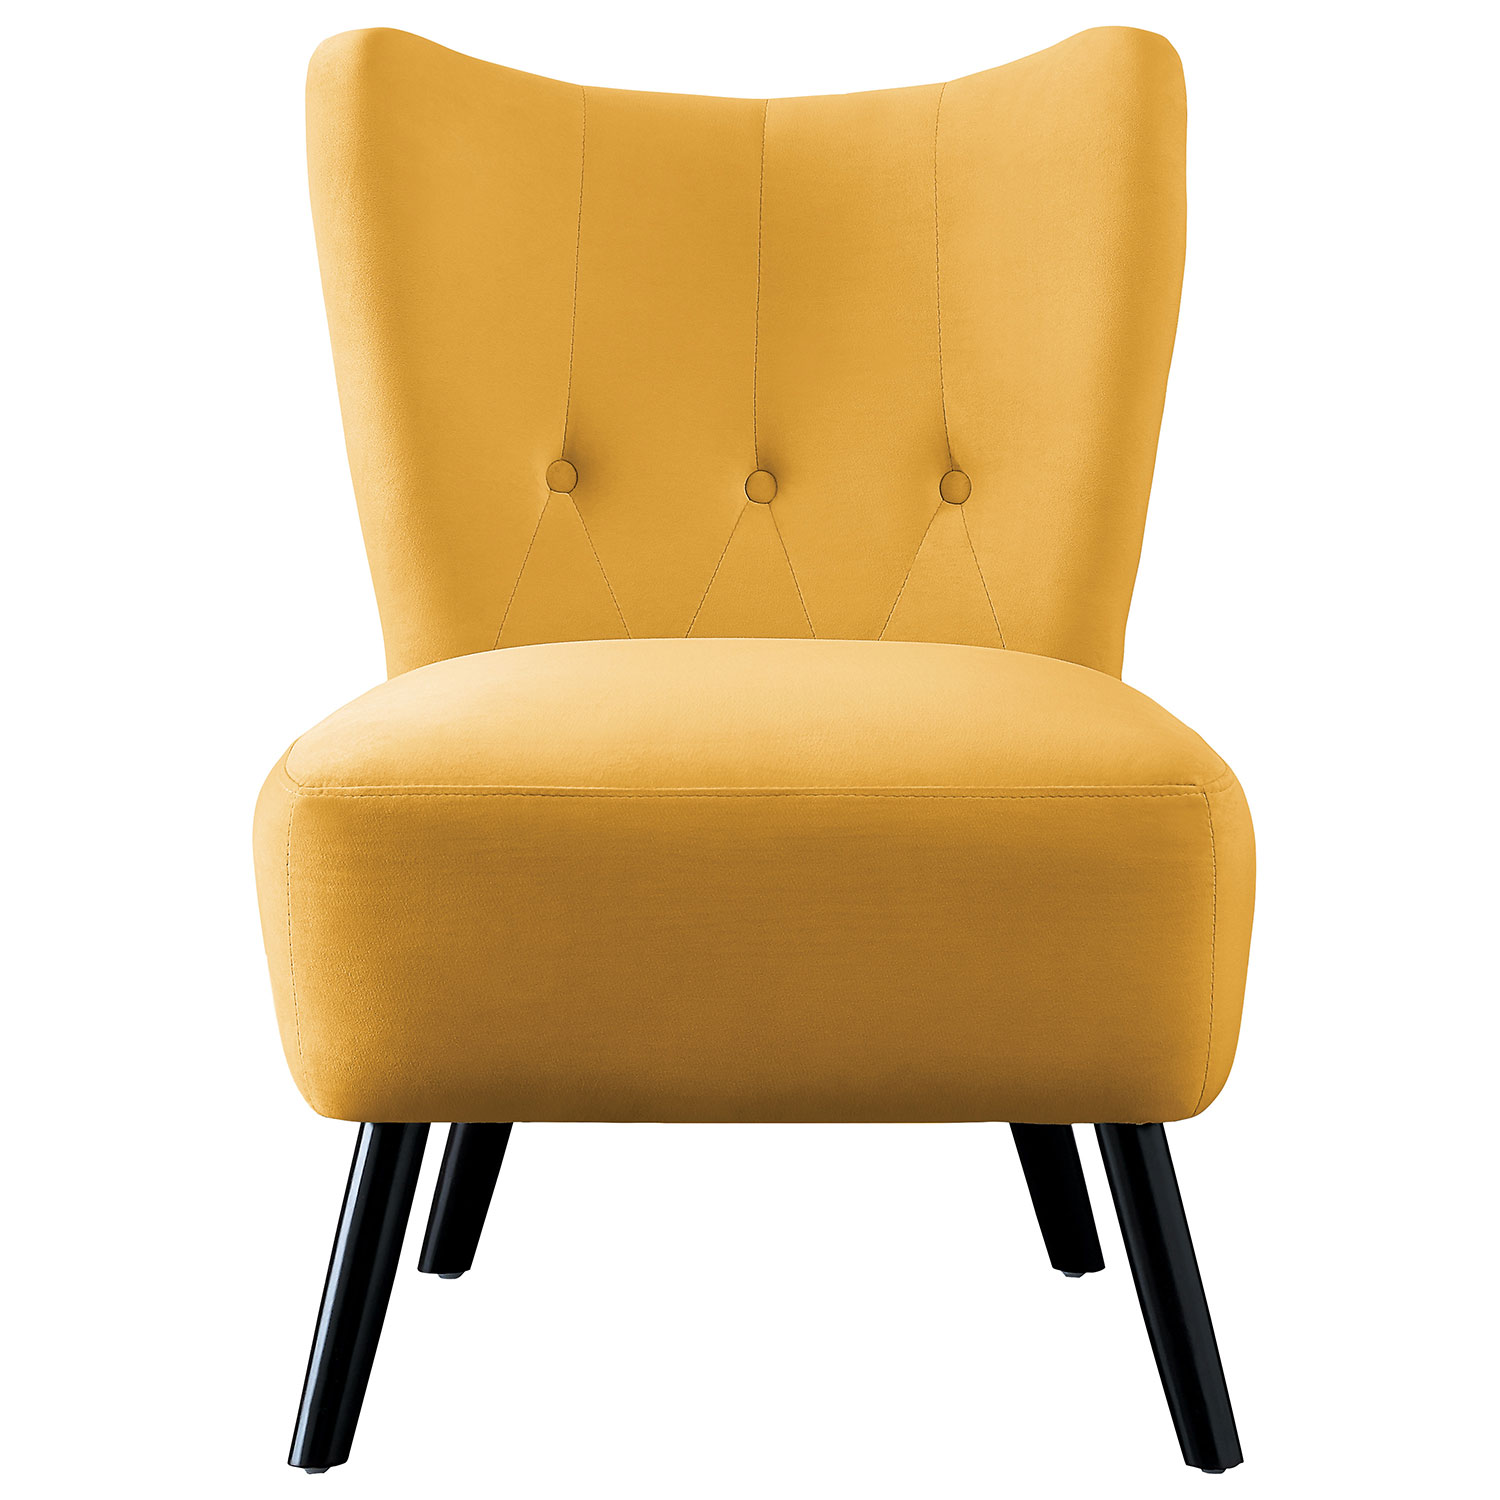 Homelegance Imani Accent Chair - Yellow